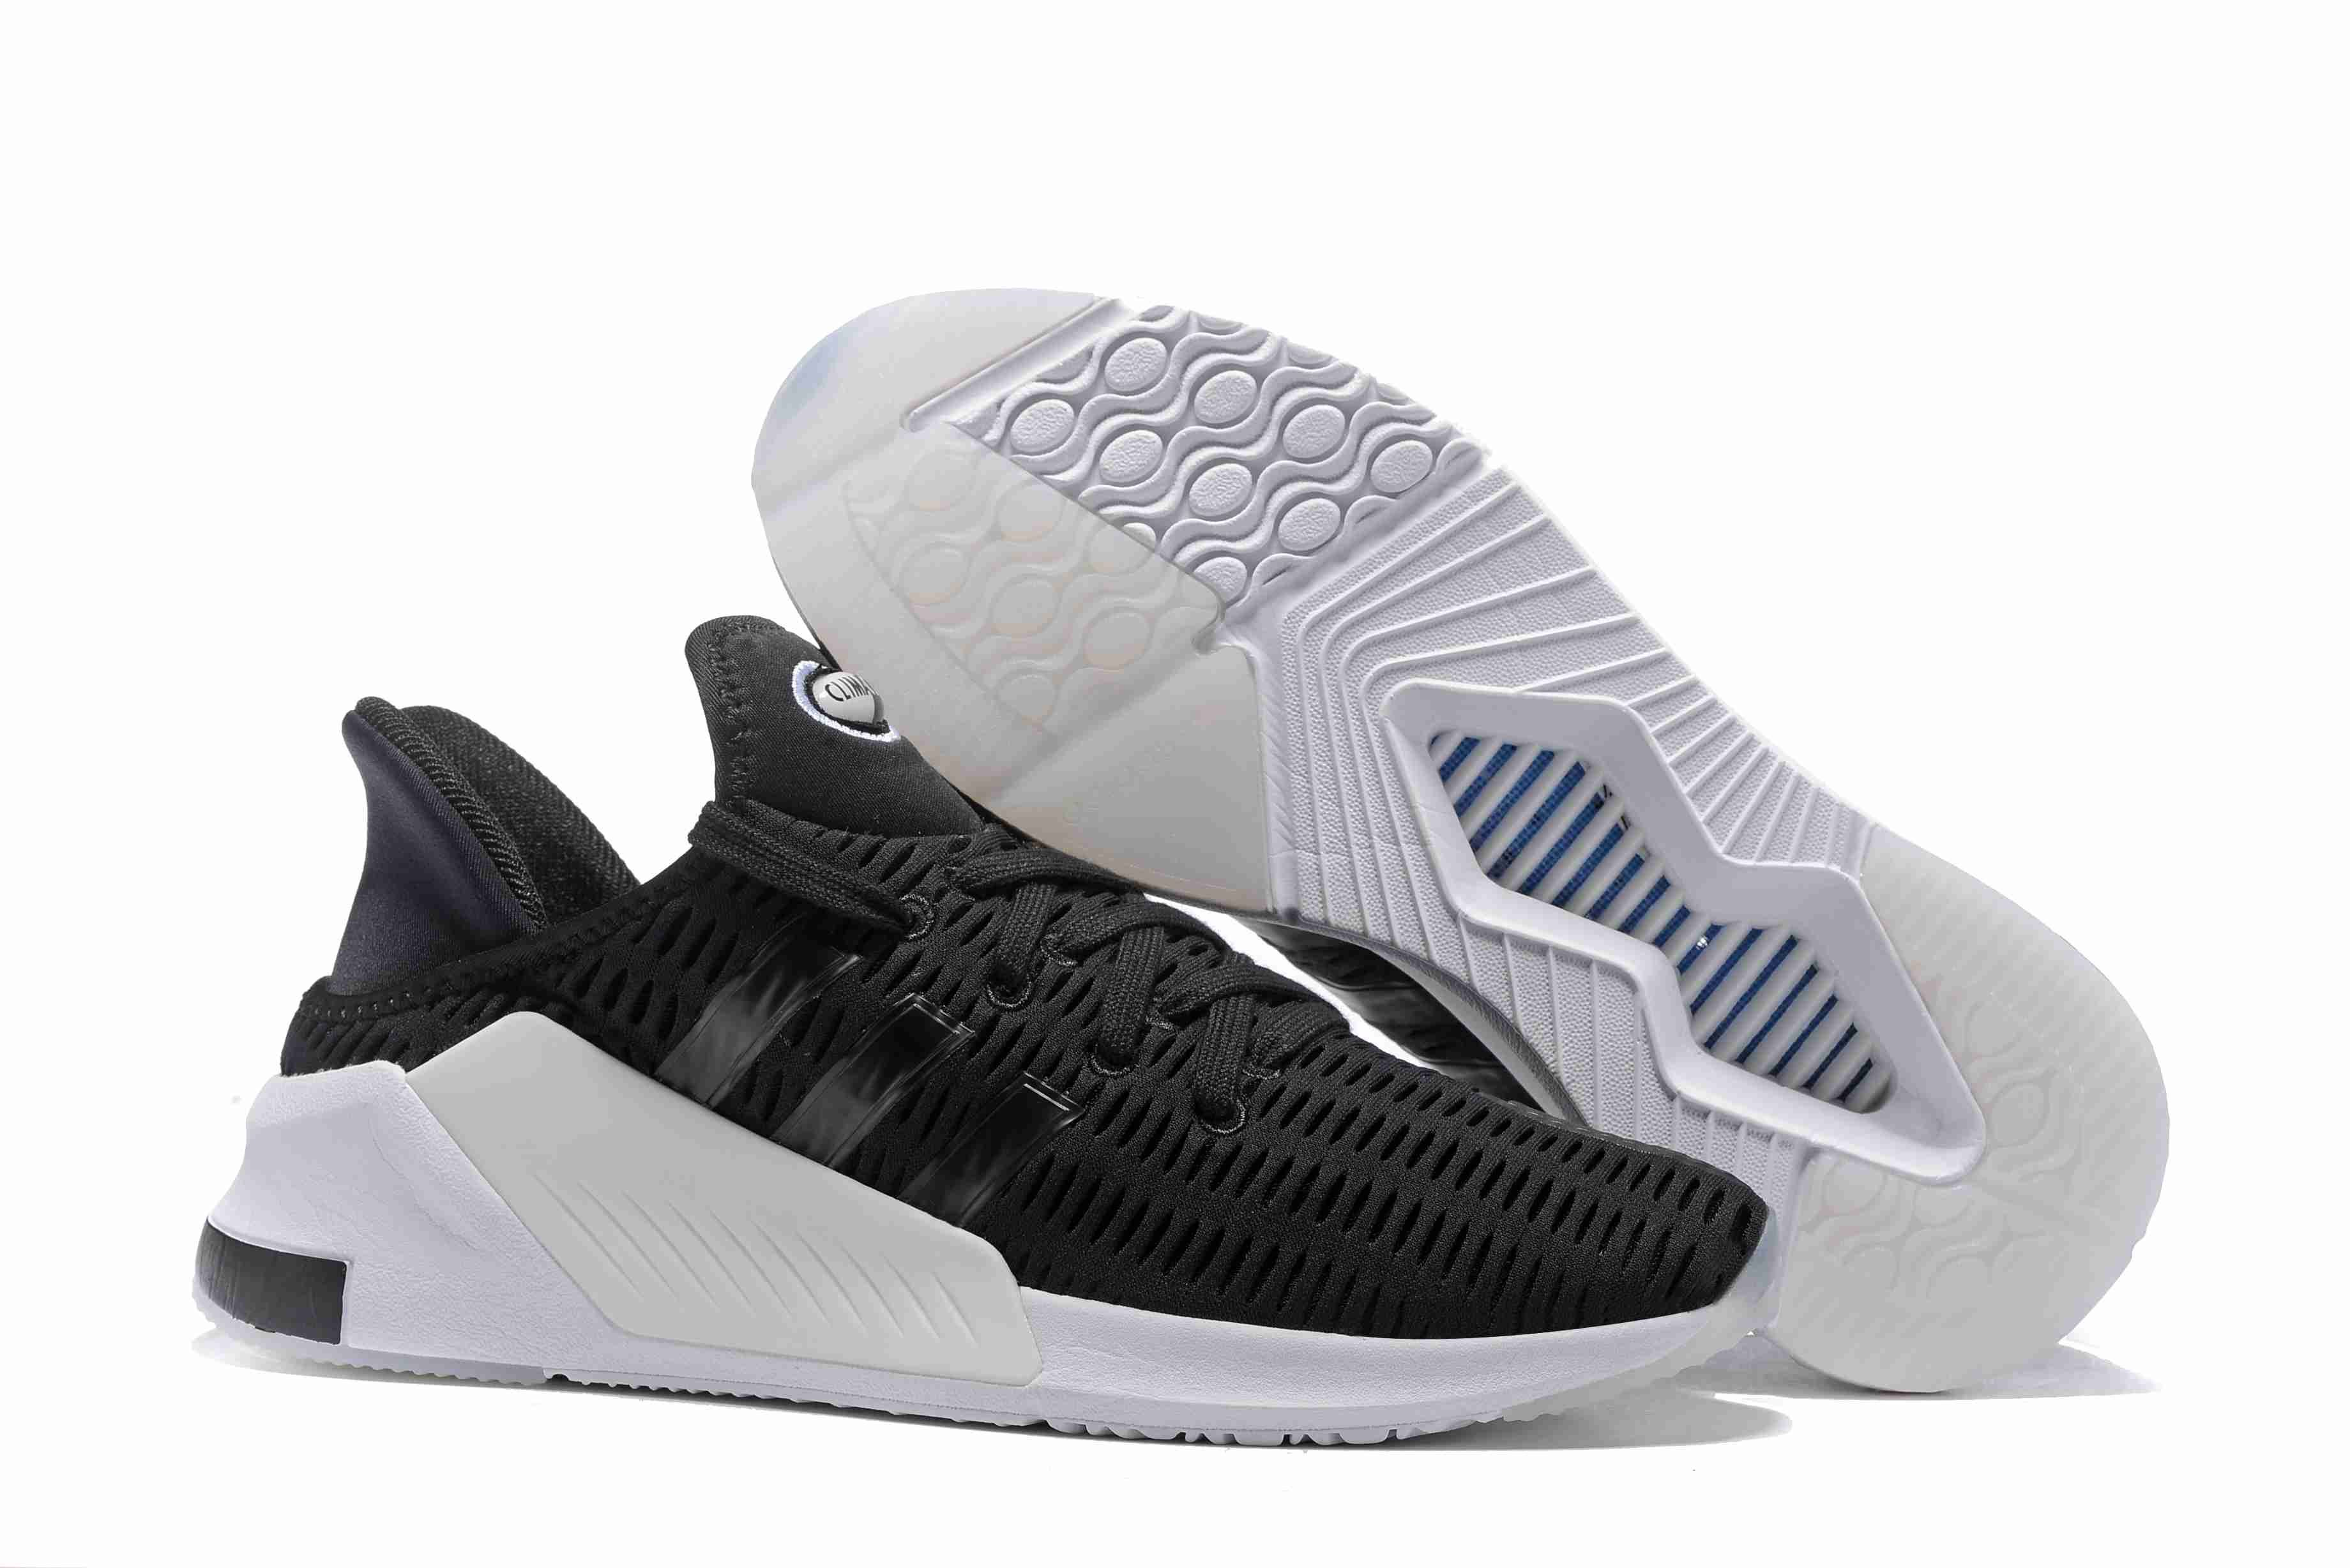 Couples Adidas Climacool ADV Breathable and Comfortable Running Shoes White  Black